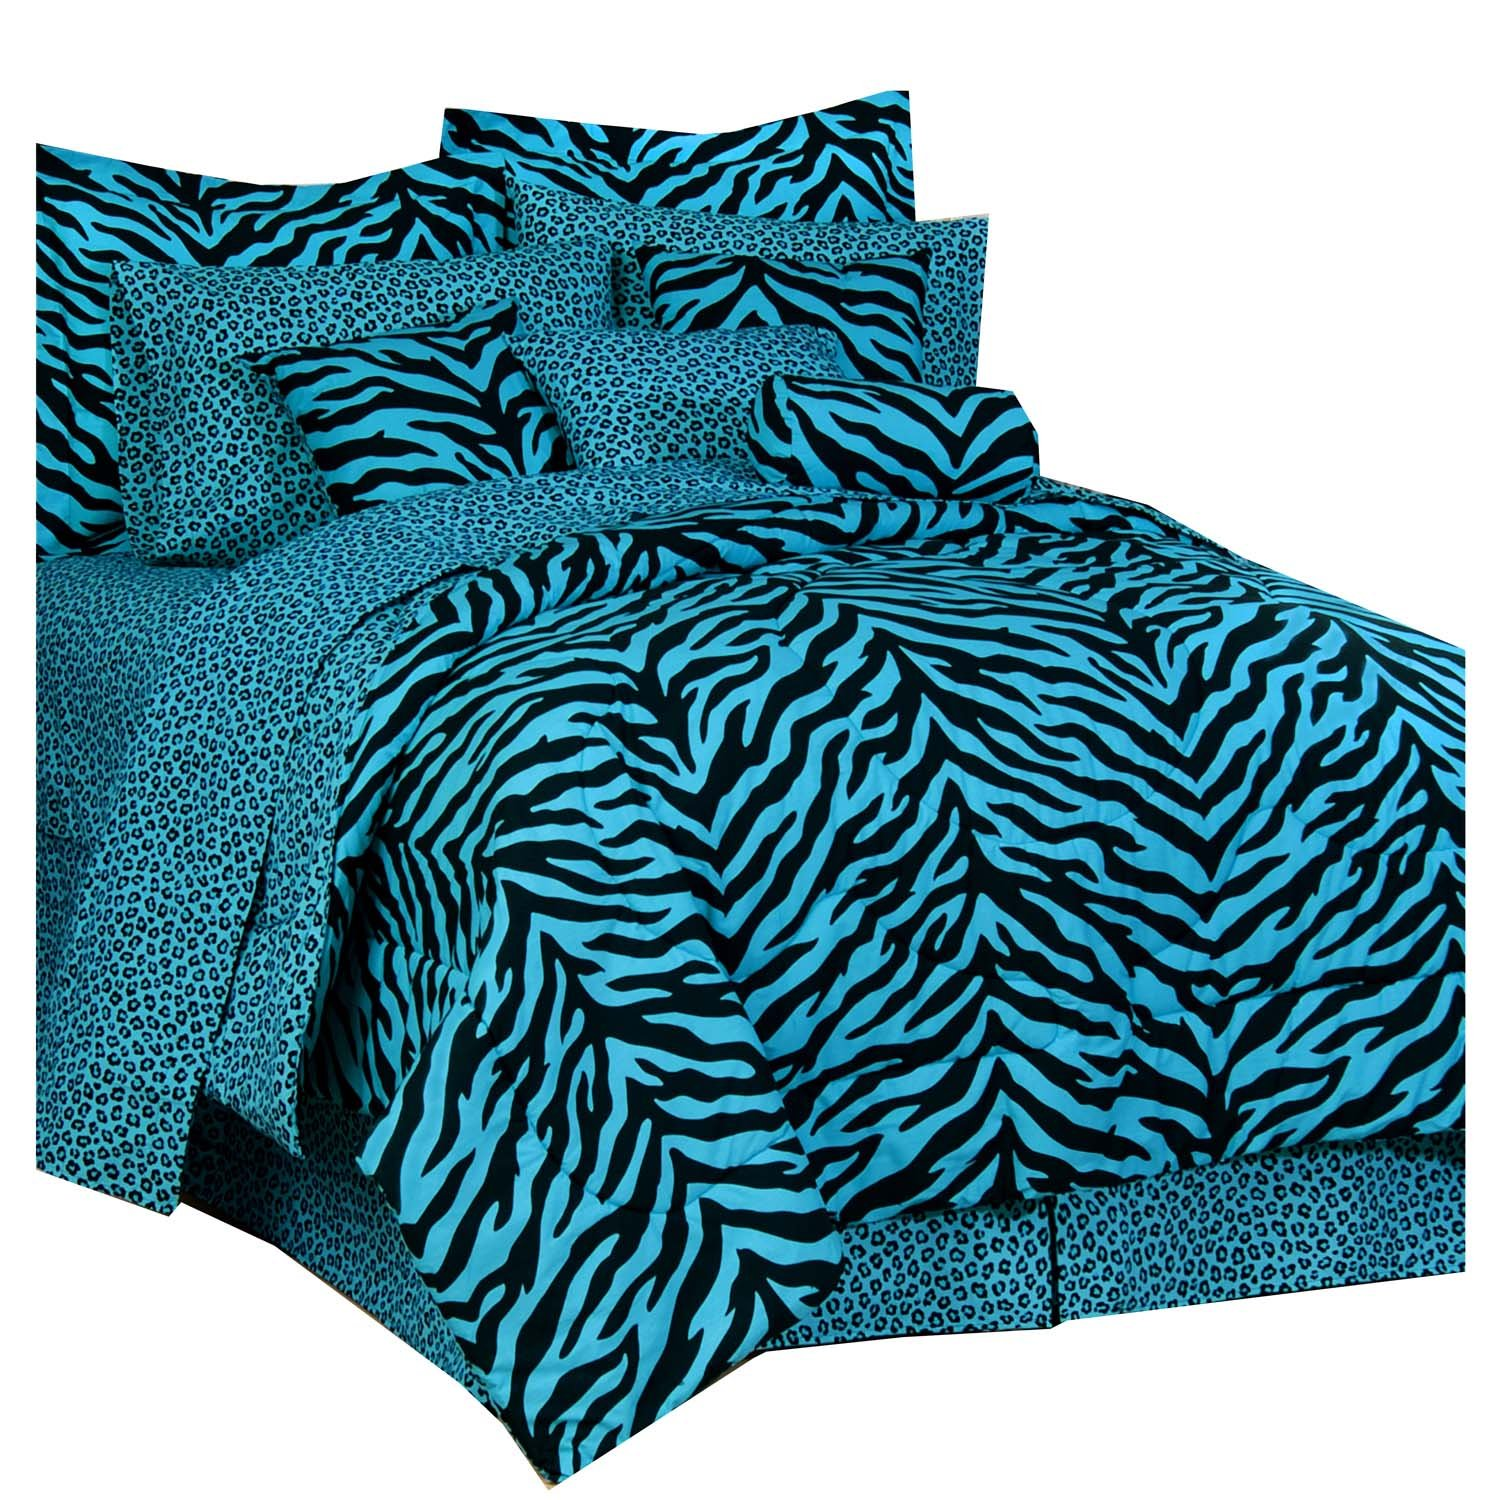 Bedding zebra print archives bedroom decor ideas Zebra print bedding